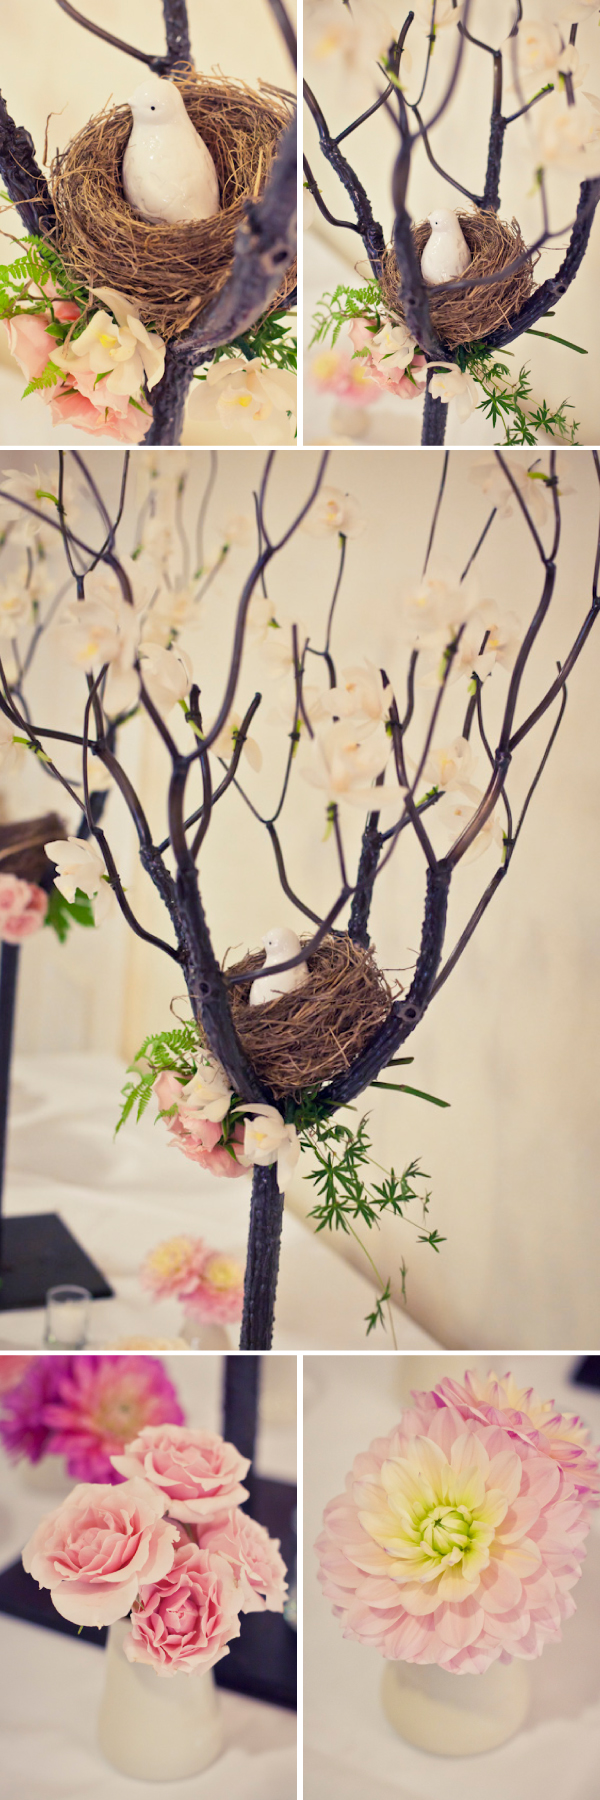 Bird's Nest Receiving Table at Queen's Landing Imperial Ballroom